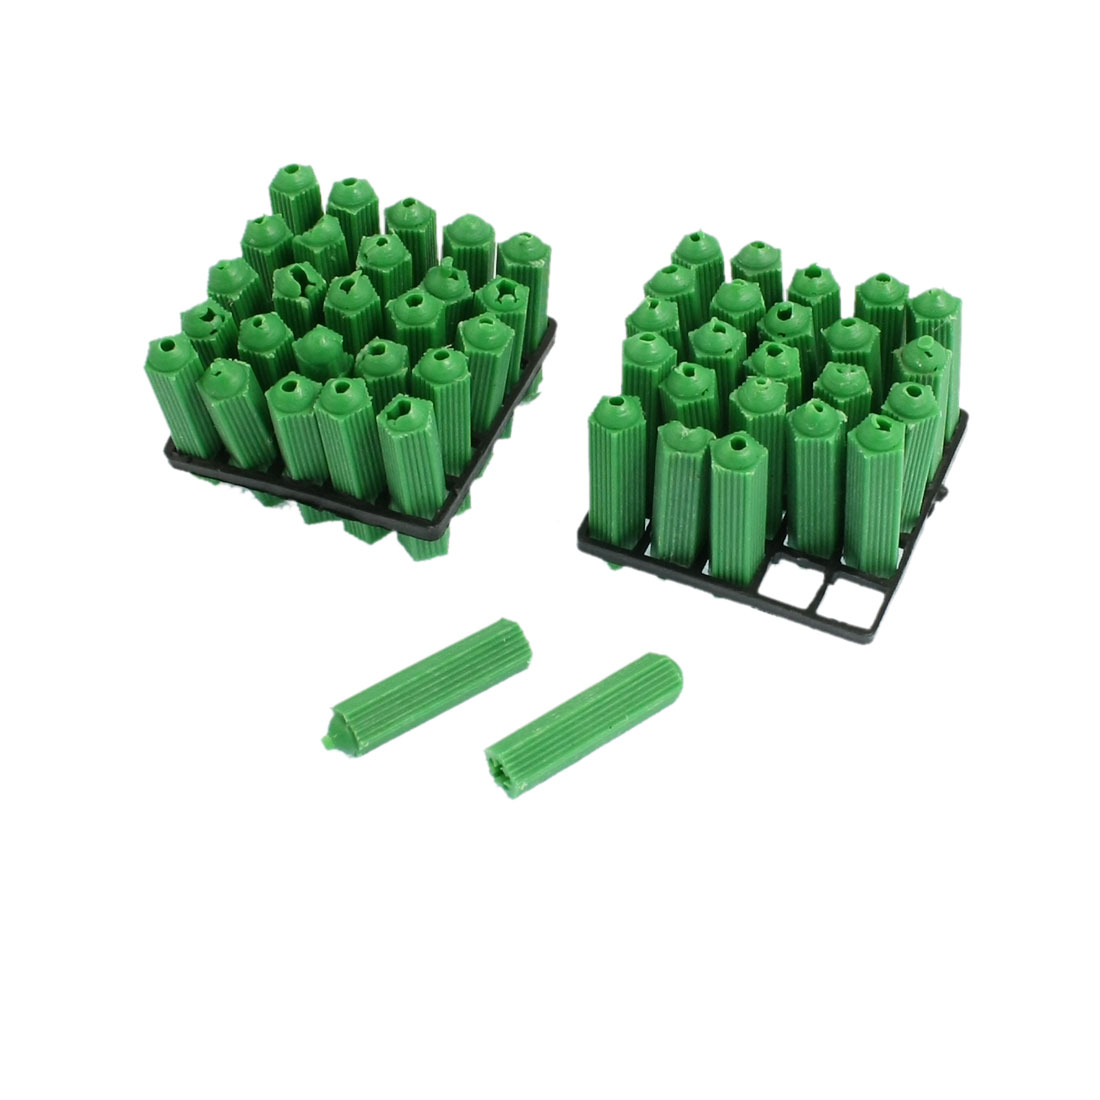 50 Pcs 6mm Green Plastic Screw Fixing Wall Plug for Masonry